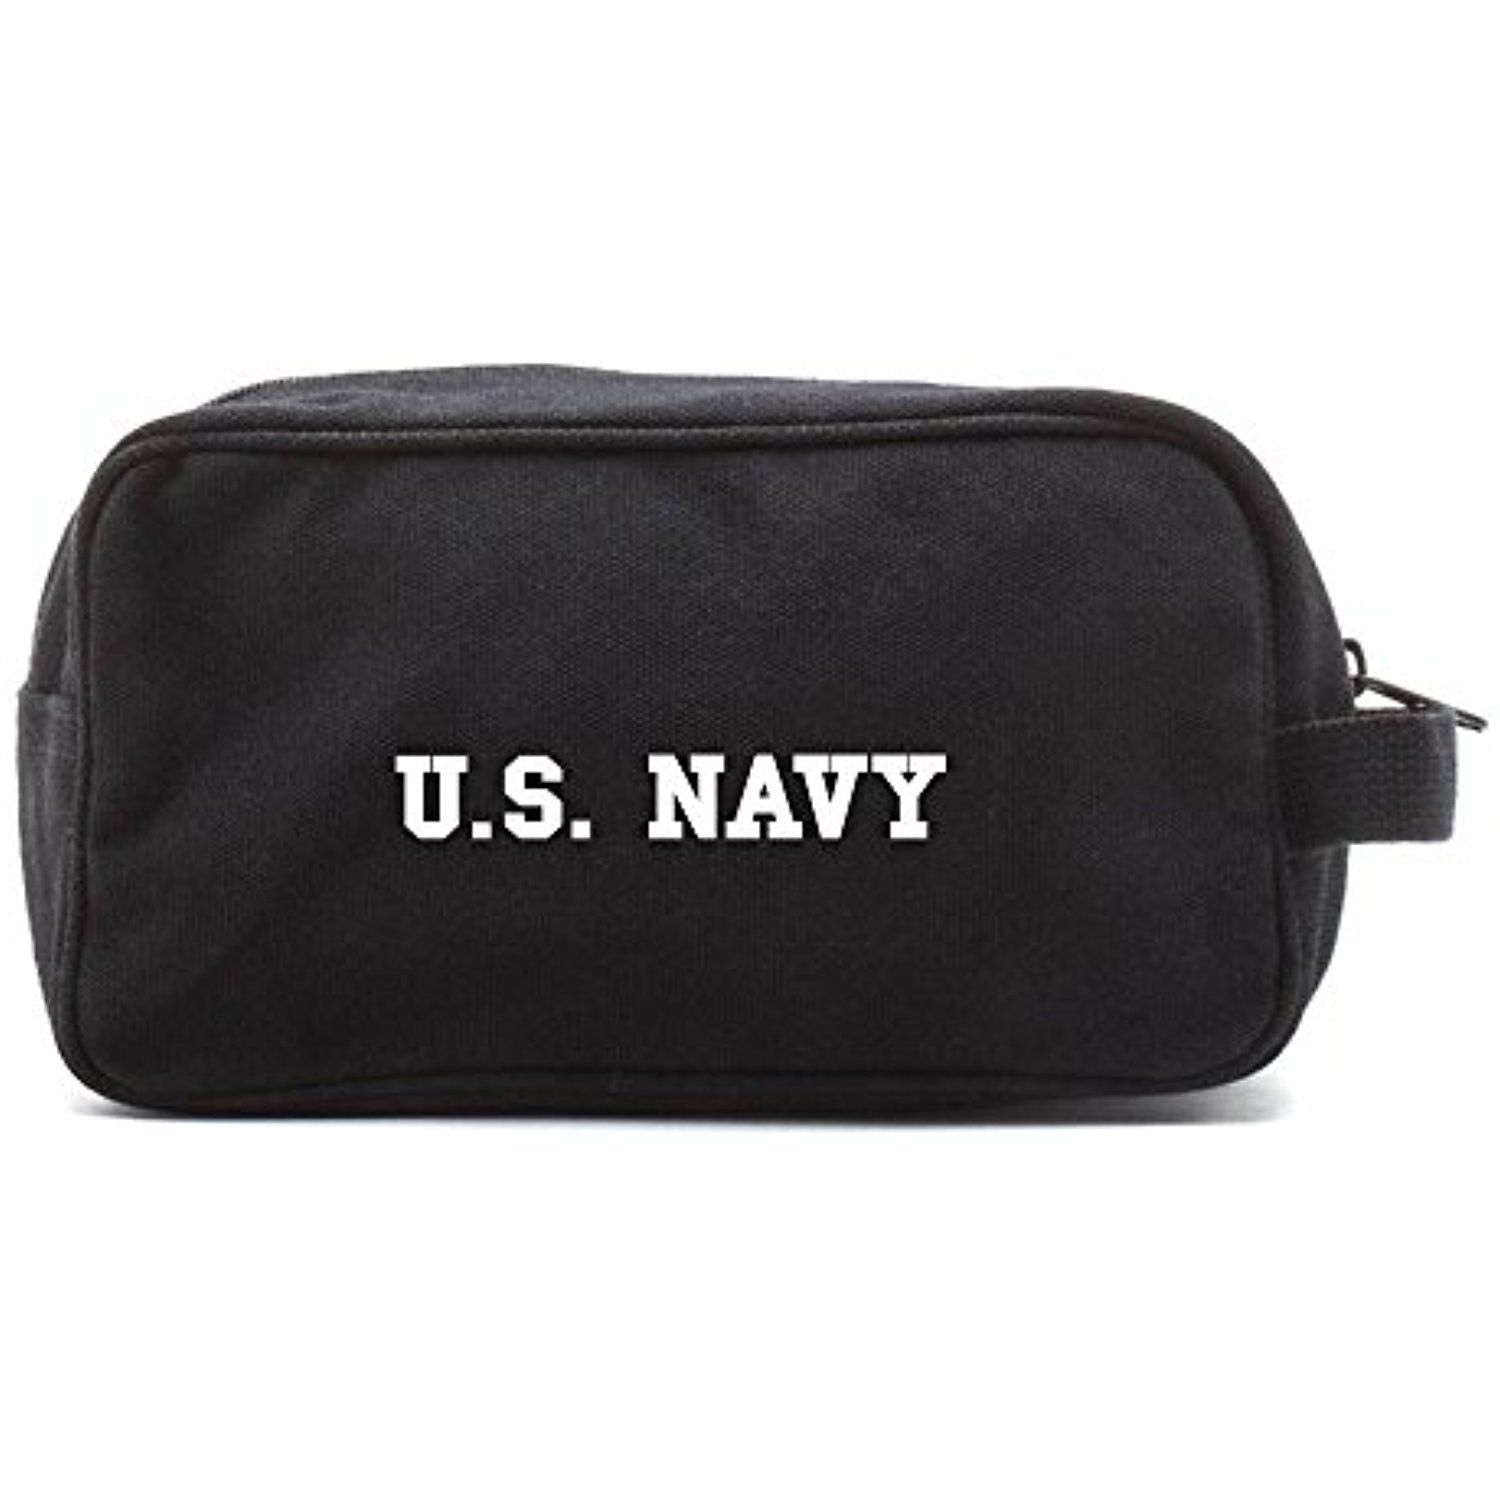 05f436f1ac US NAVY Text Canvas Shower Kit Travel Toiletry Bag Case     You can find  more details by visiting the image link. (This is an affiliate link)   ...